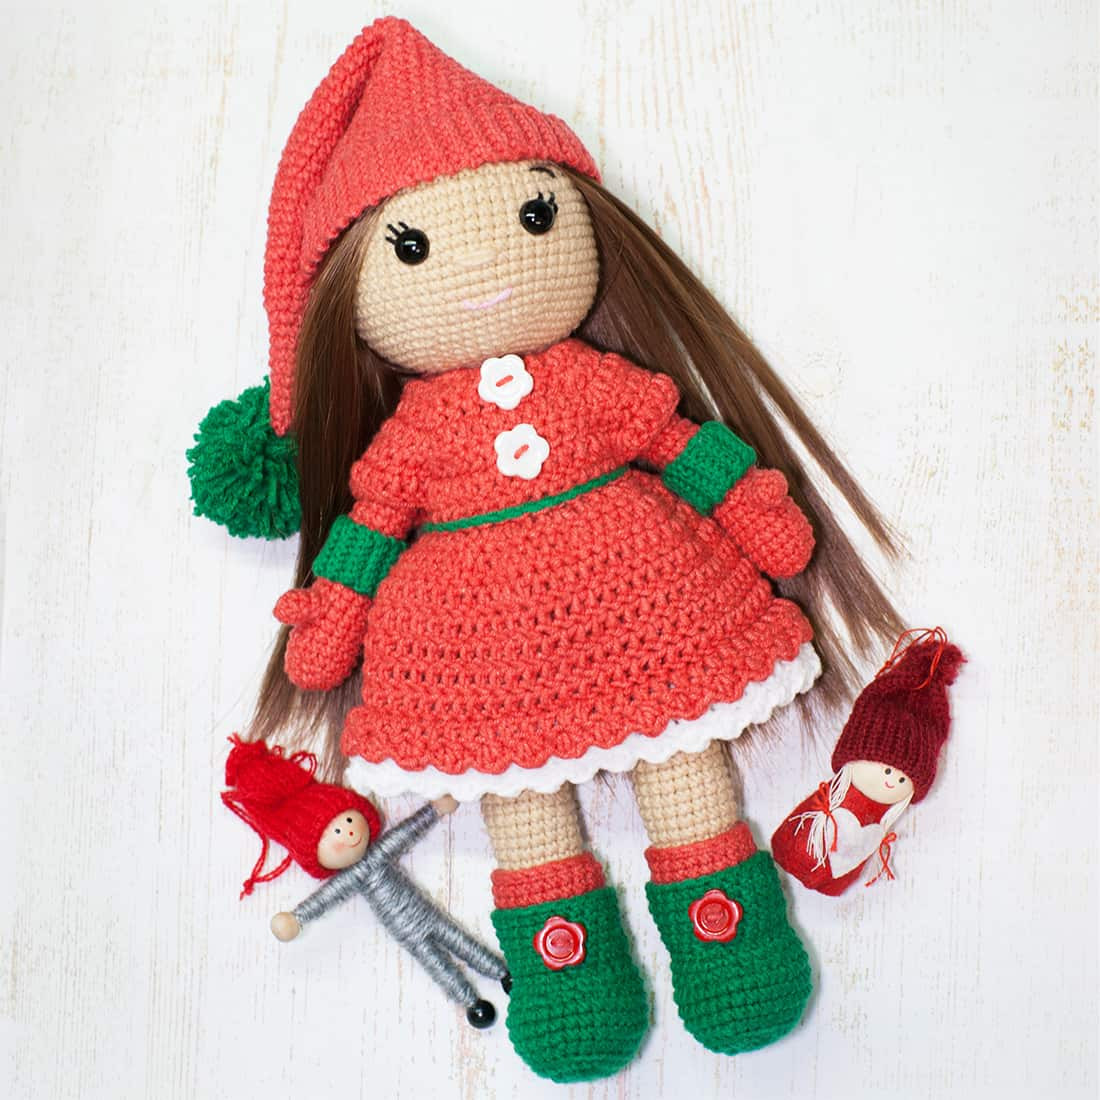 Doll Patterns New Christmas Doll Crochet Pattern Amigurumi today Of Doll Patterns Luxury Dolls Patterns Free Free Patterns